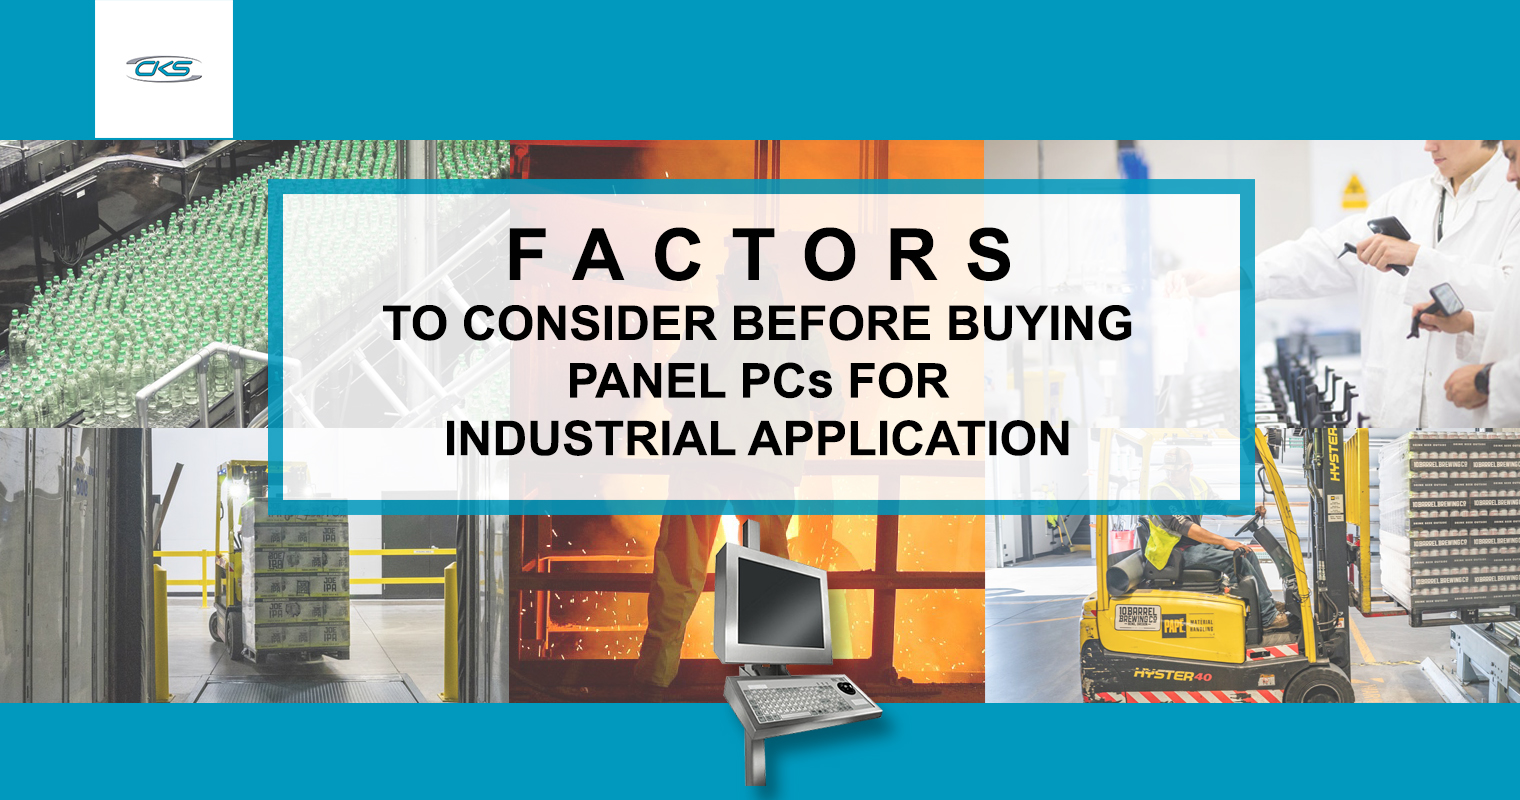 Factors to Consider Before Buying Panel PCs for Industrial Application